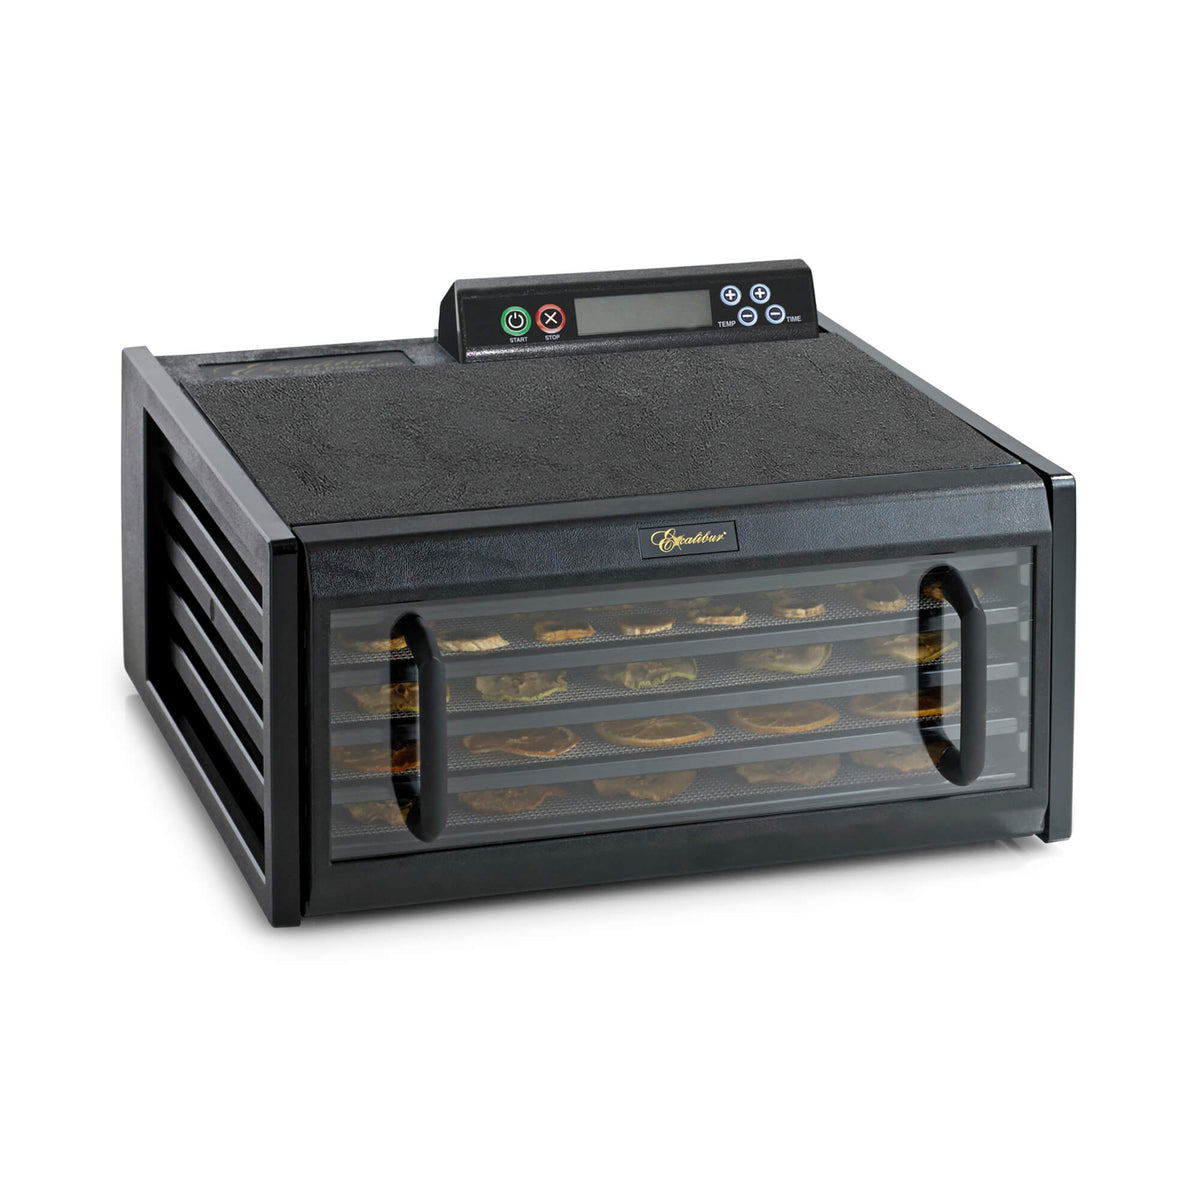 Excalibur 4548CDB 5 tray digital dehydrator with clear door closed and food on the trays.